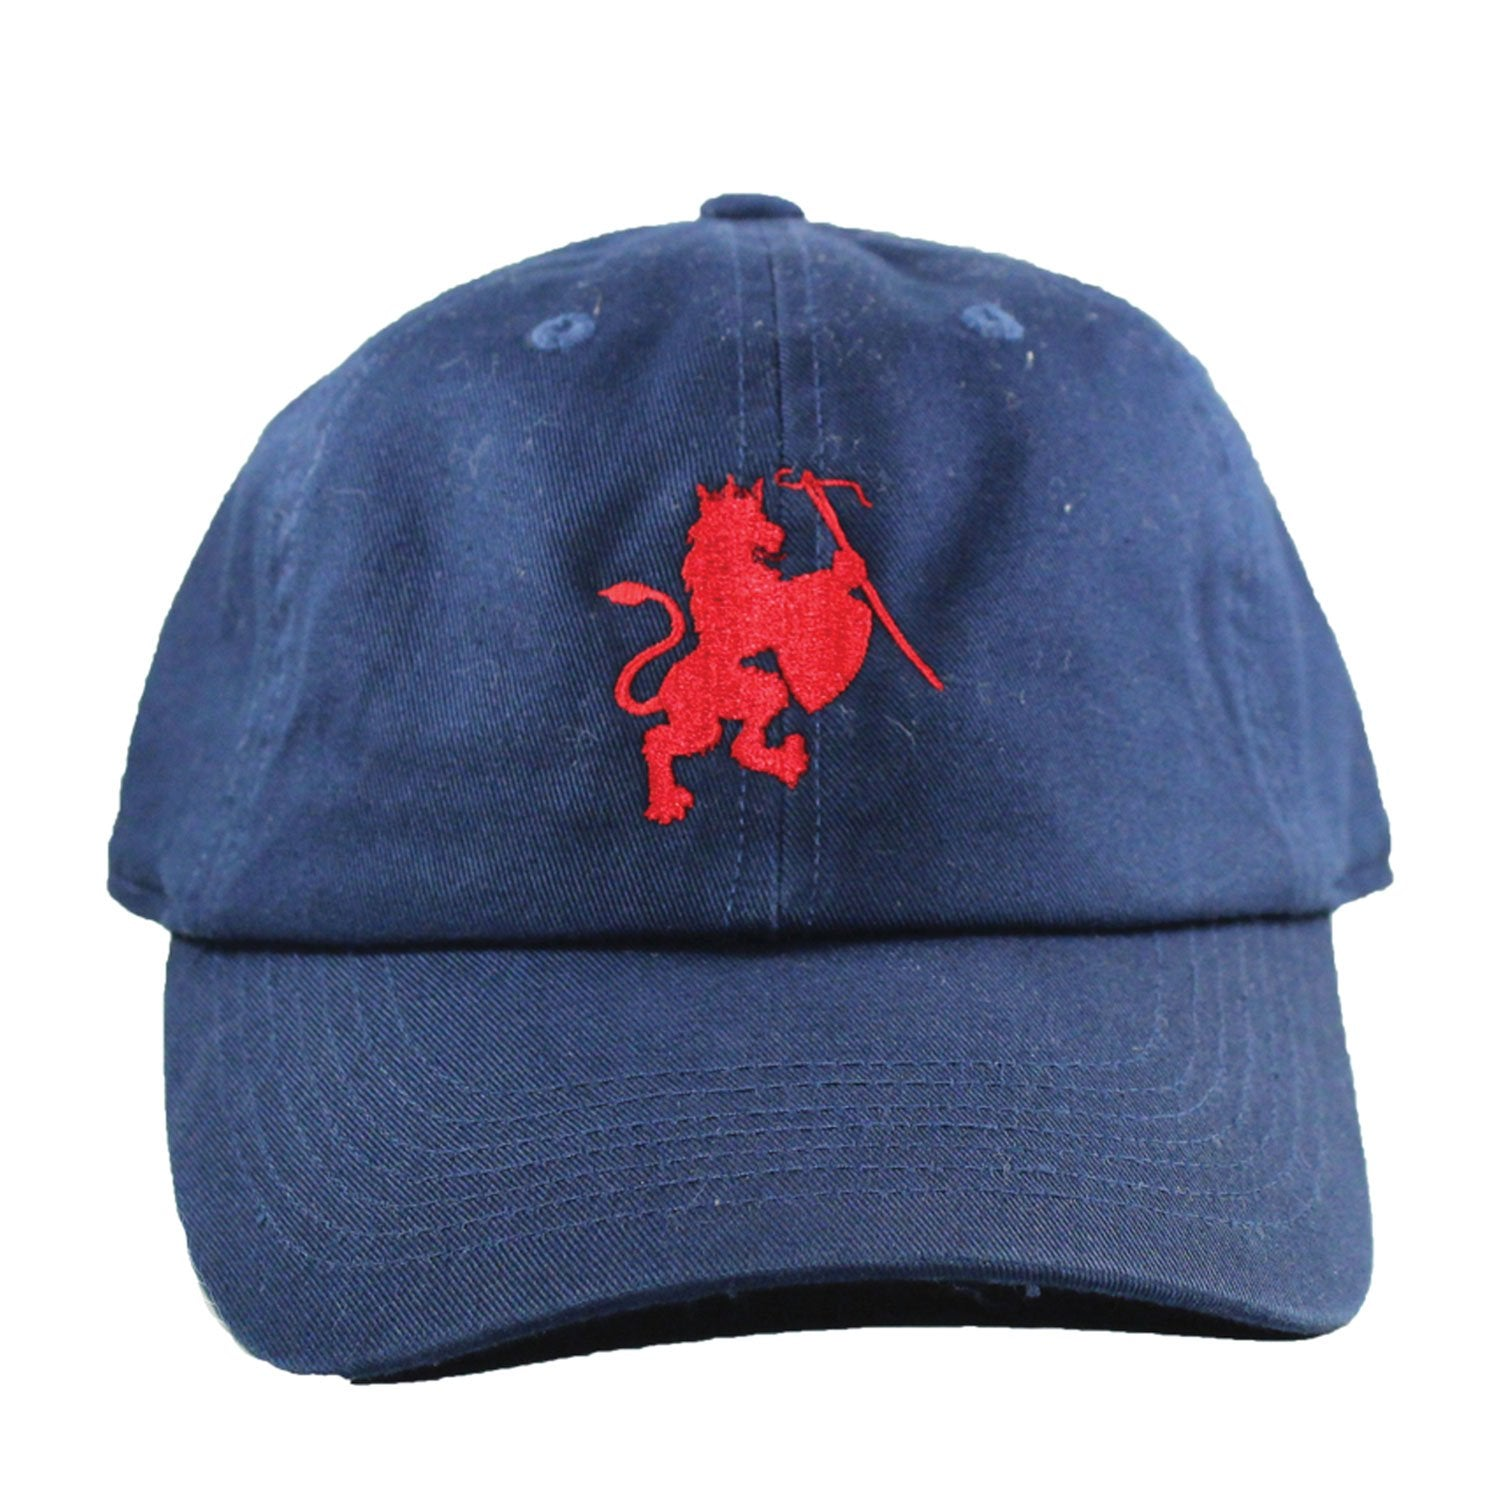 Lion Crest navy dad hat